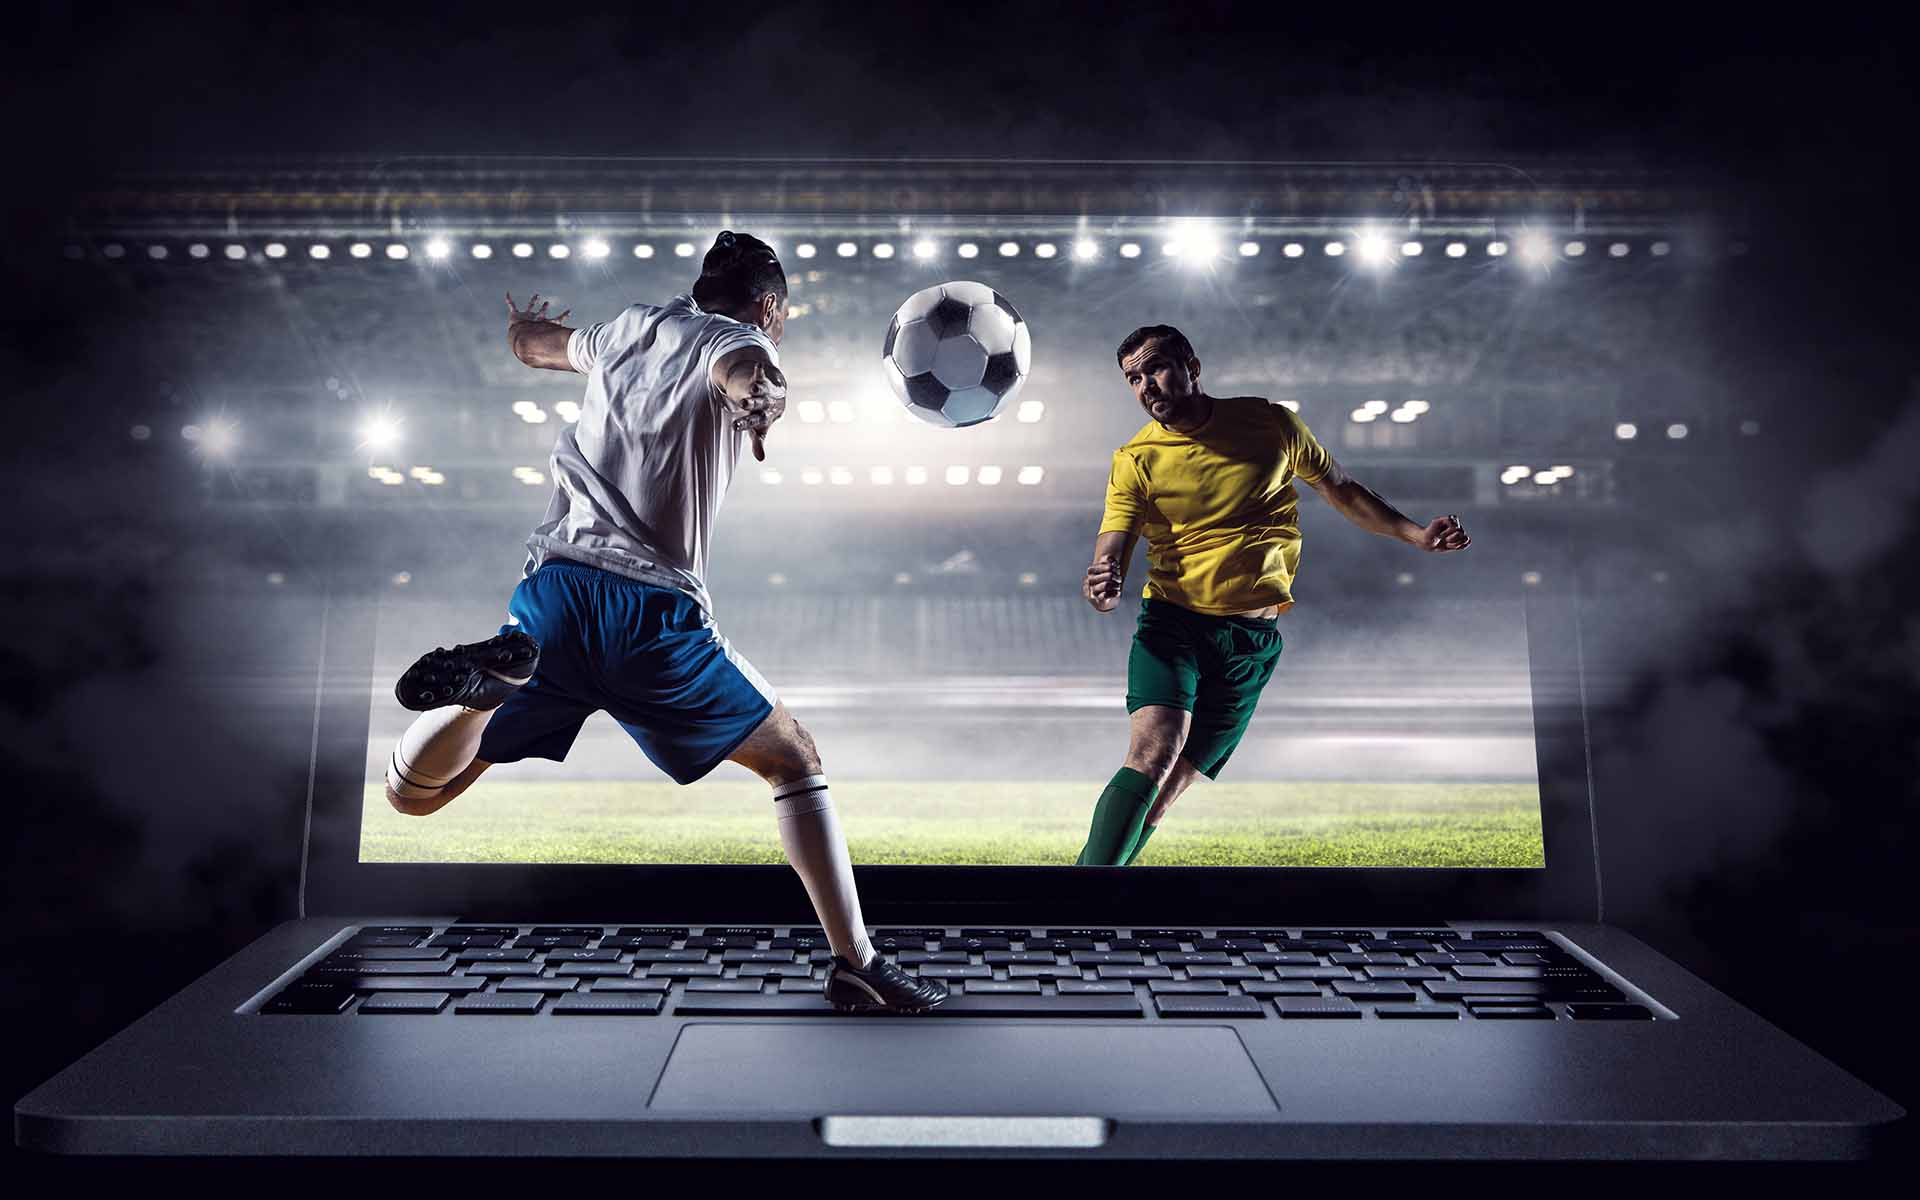 Make sure you place your wagers in a safe gambling site by following these simple tips